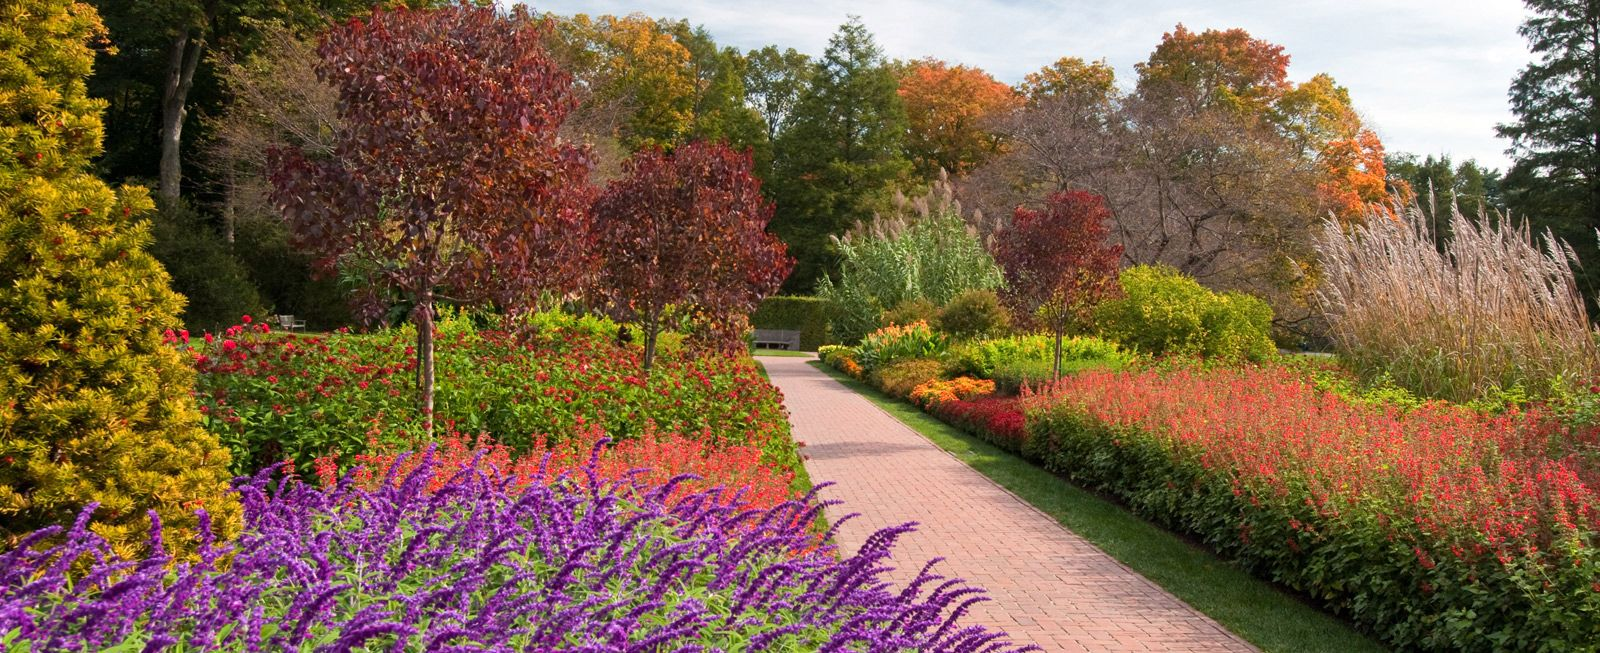 Longwood Gardens | Minication to Philly | Pinterest | Longwood ...